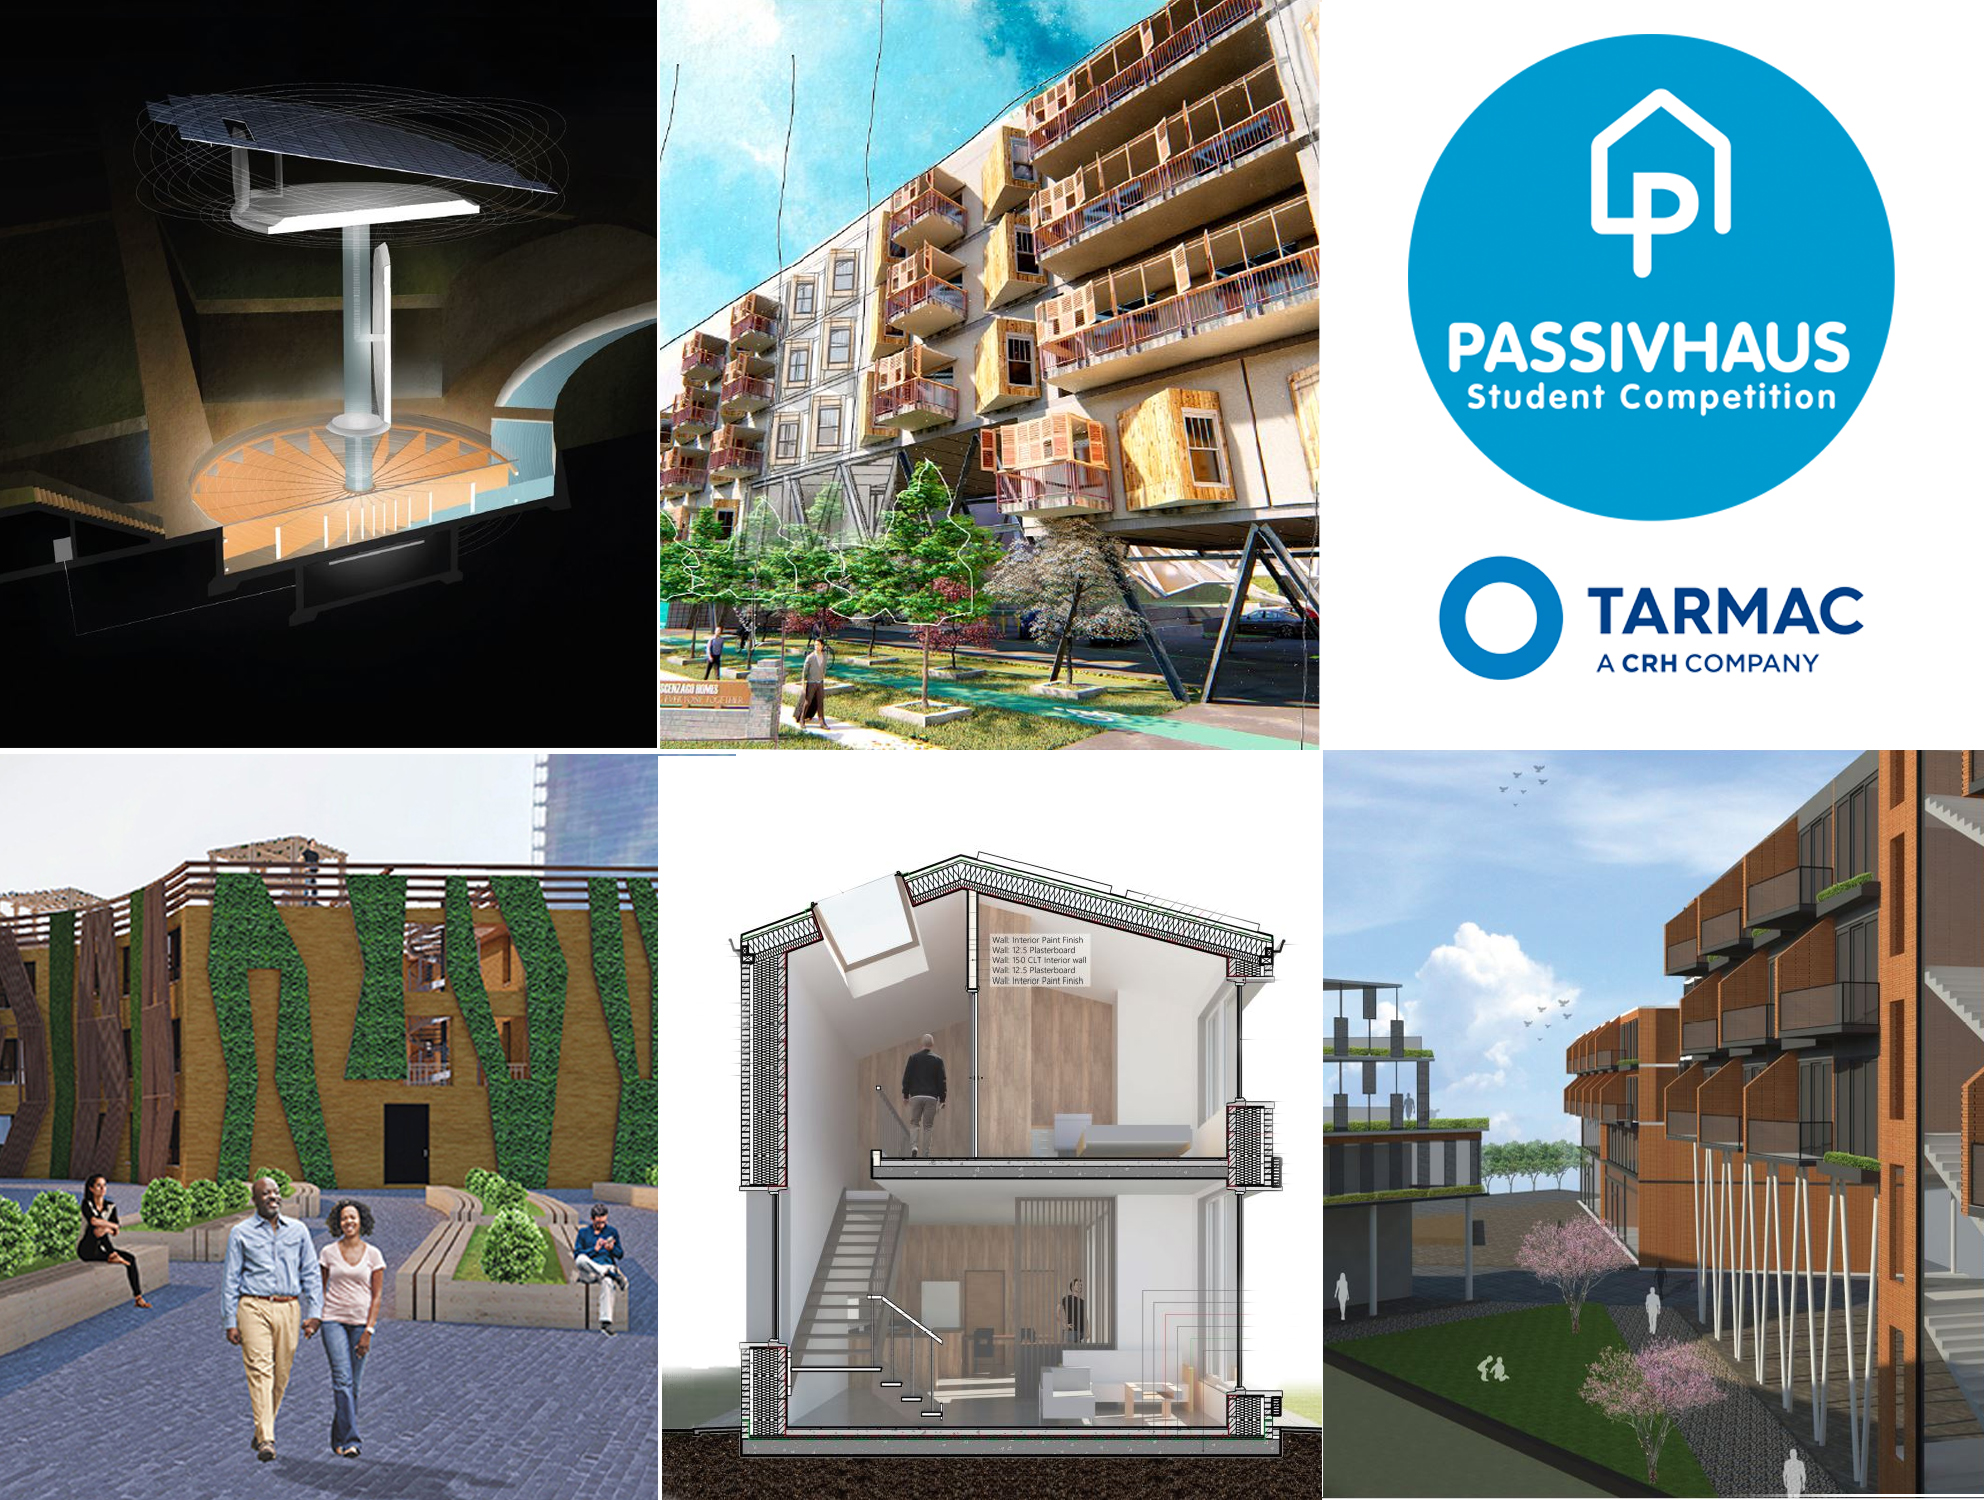 2019 Passivhaus Student Competition Winners